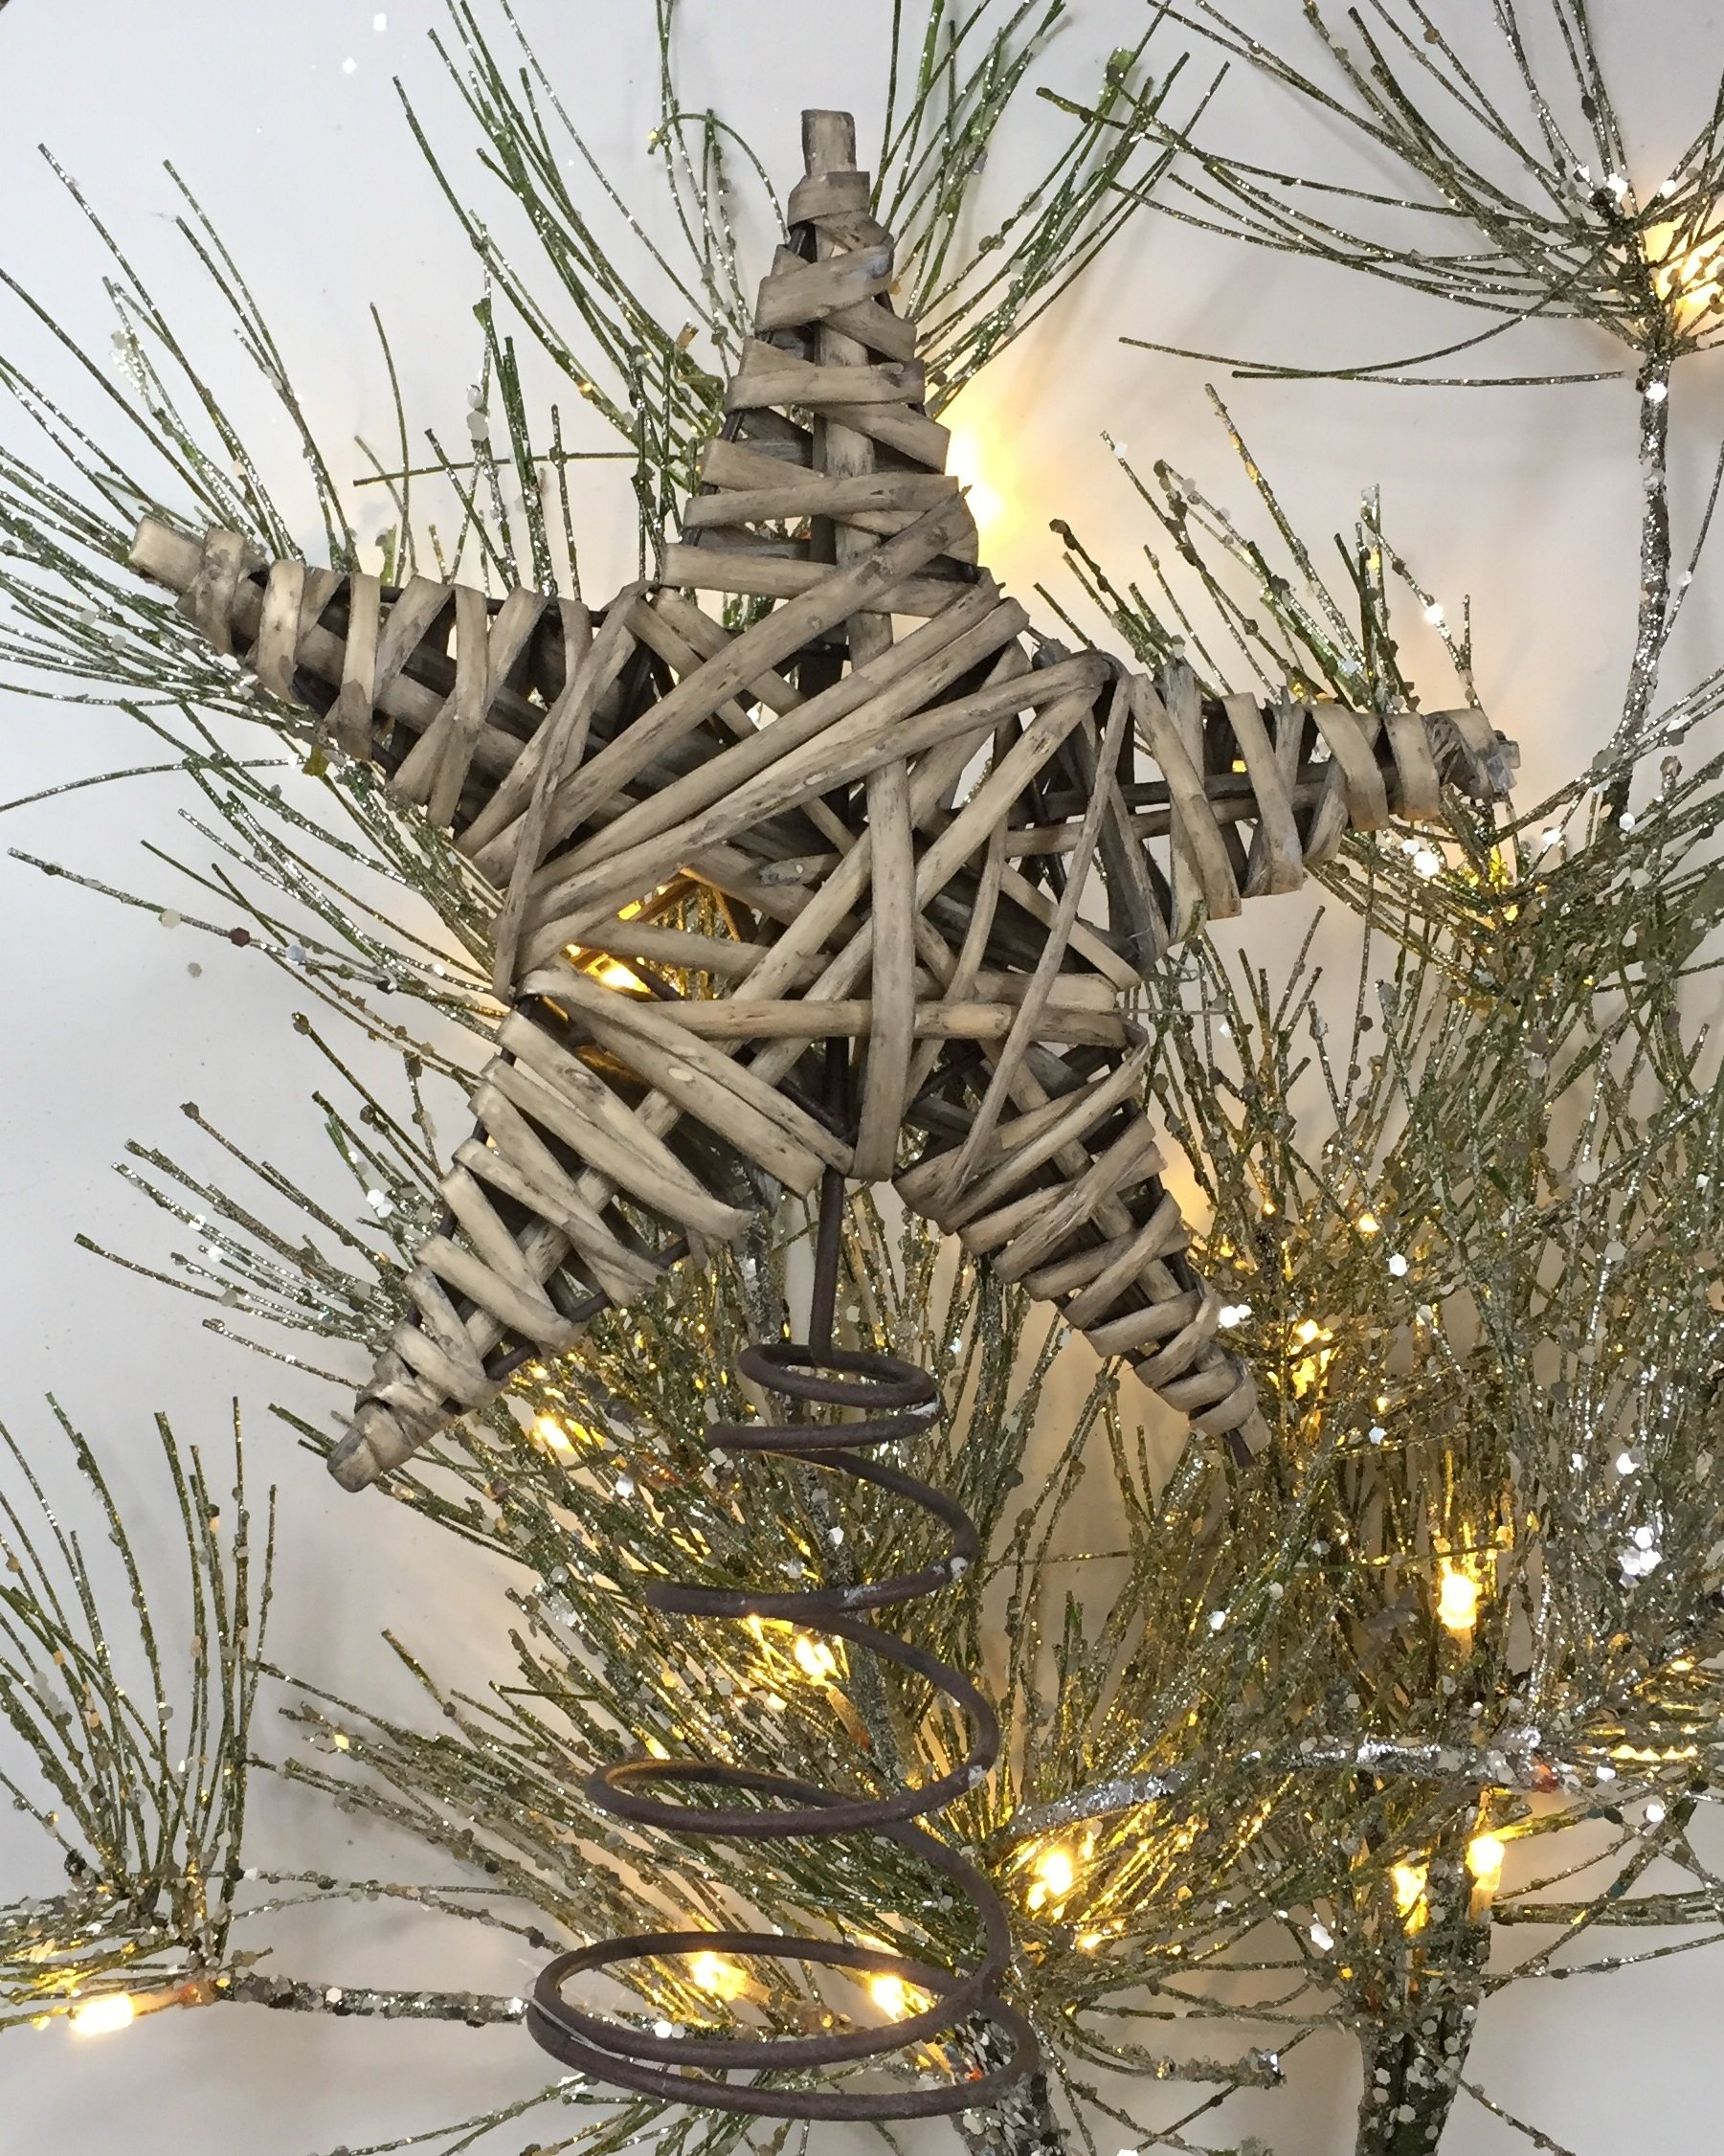 Rustic Christmas Tree Topper or Wine Topper - Wrapped Willow Star in Weathered Gray - Perfect for Nature Inspired, Beach, Nautical, Country Christmas Decorating Themes